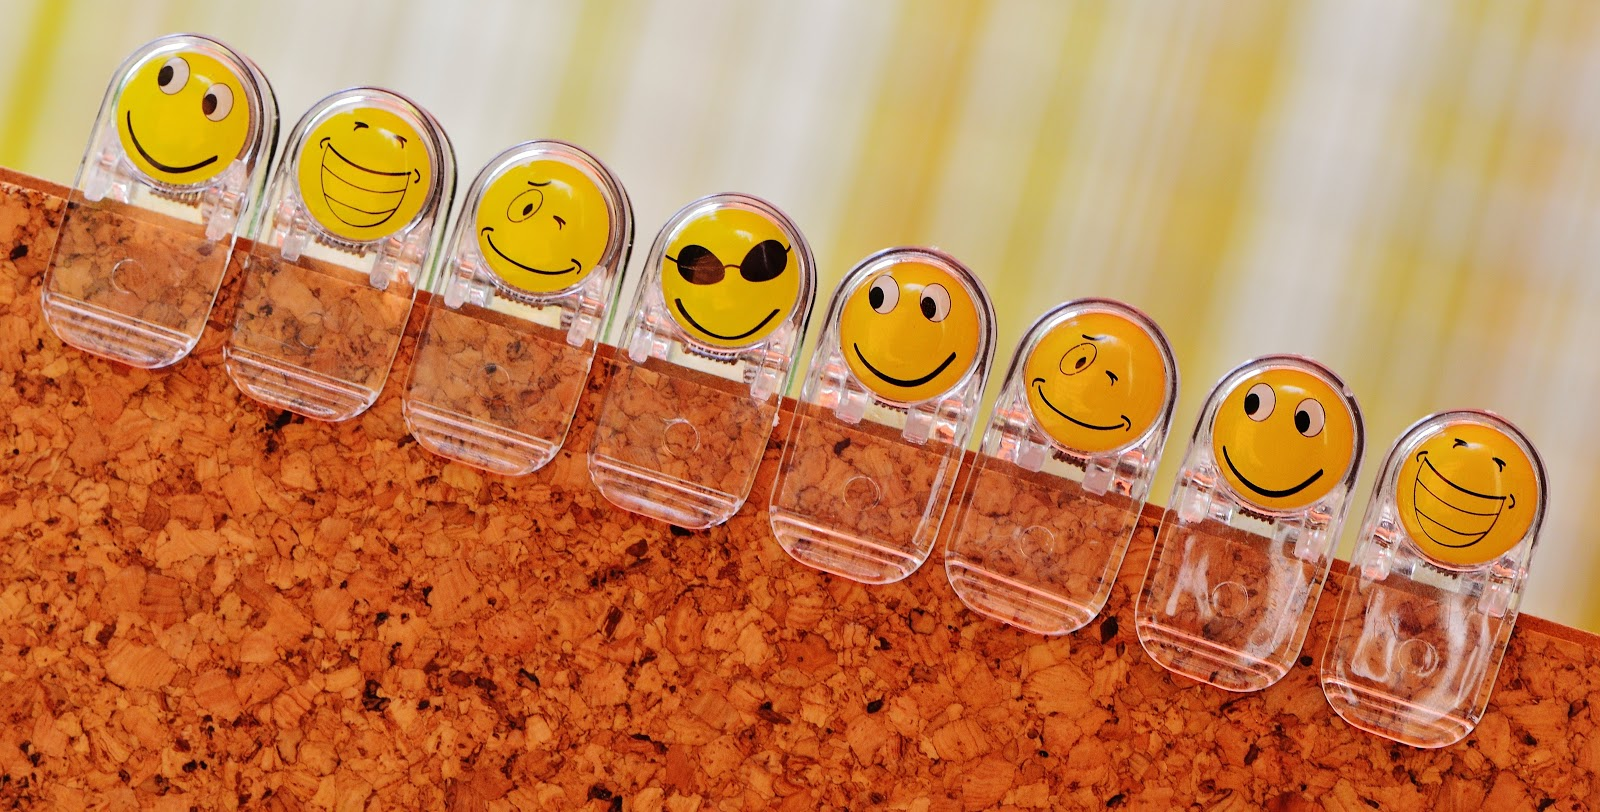 Emotions affect customer relations